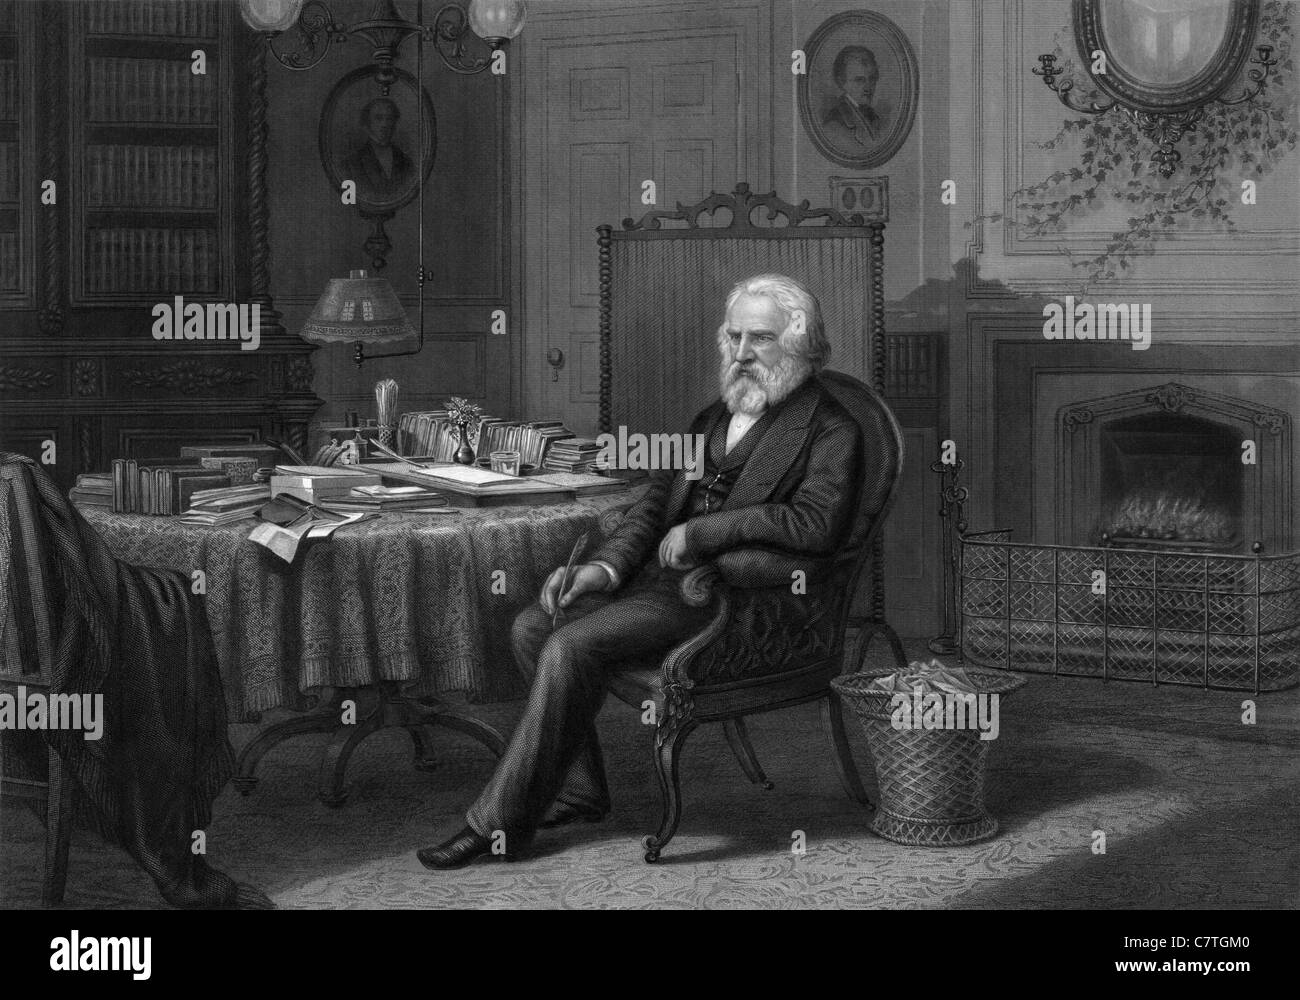 Vintage portrait engraving circa 1880s of American poet and educator Henry Wadsworth Longfellow (1807 - 1882) sitting - Stock Image